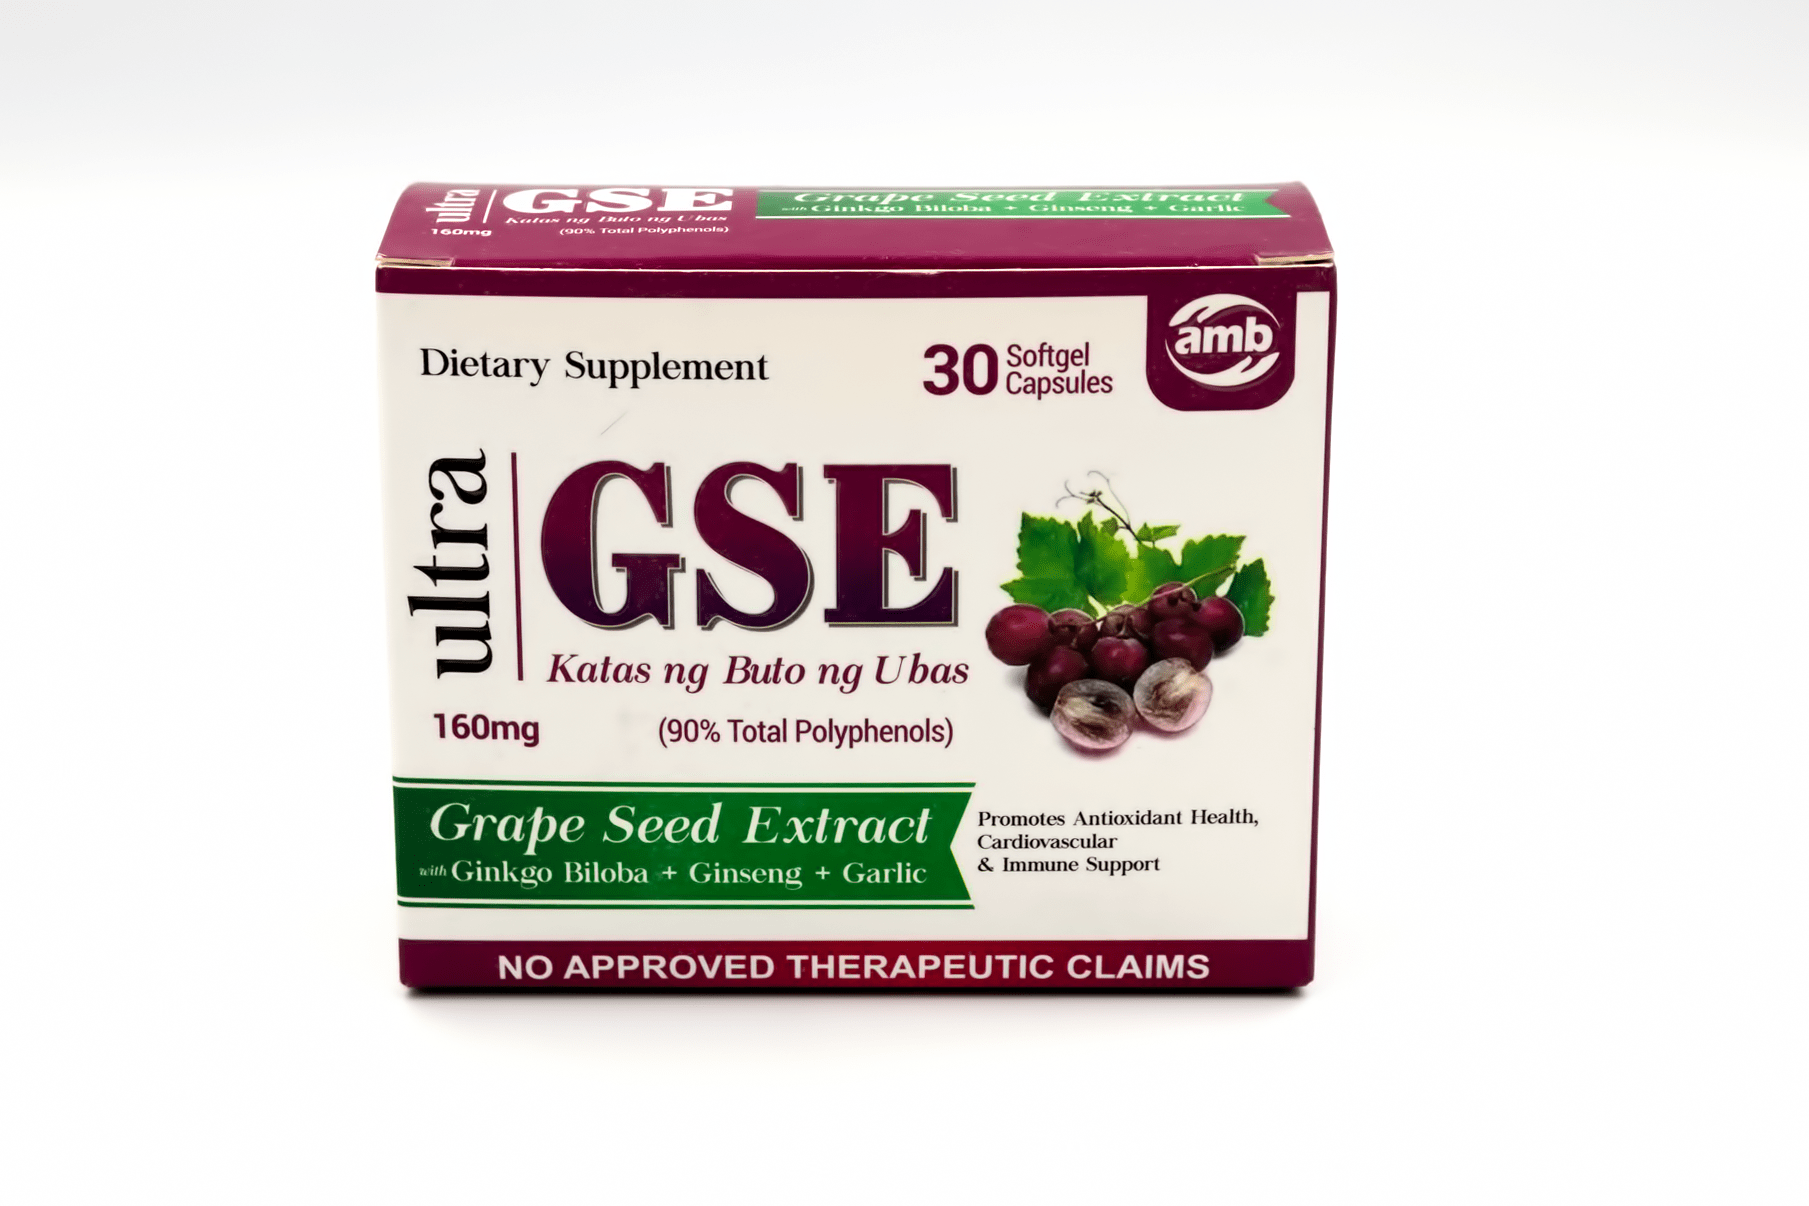 ULTRA GSE